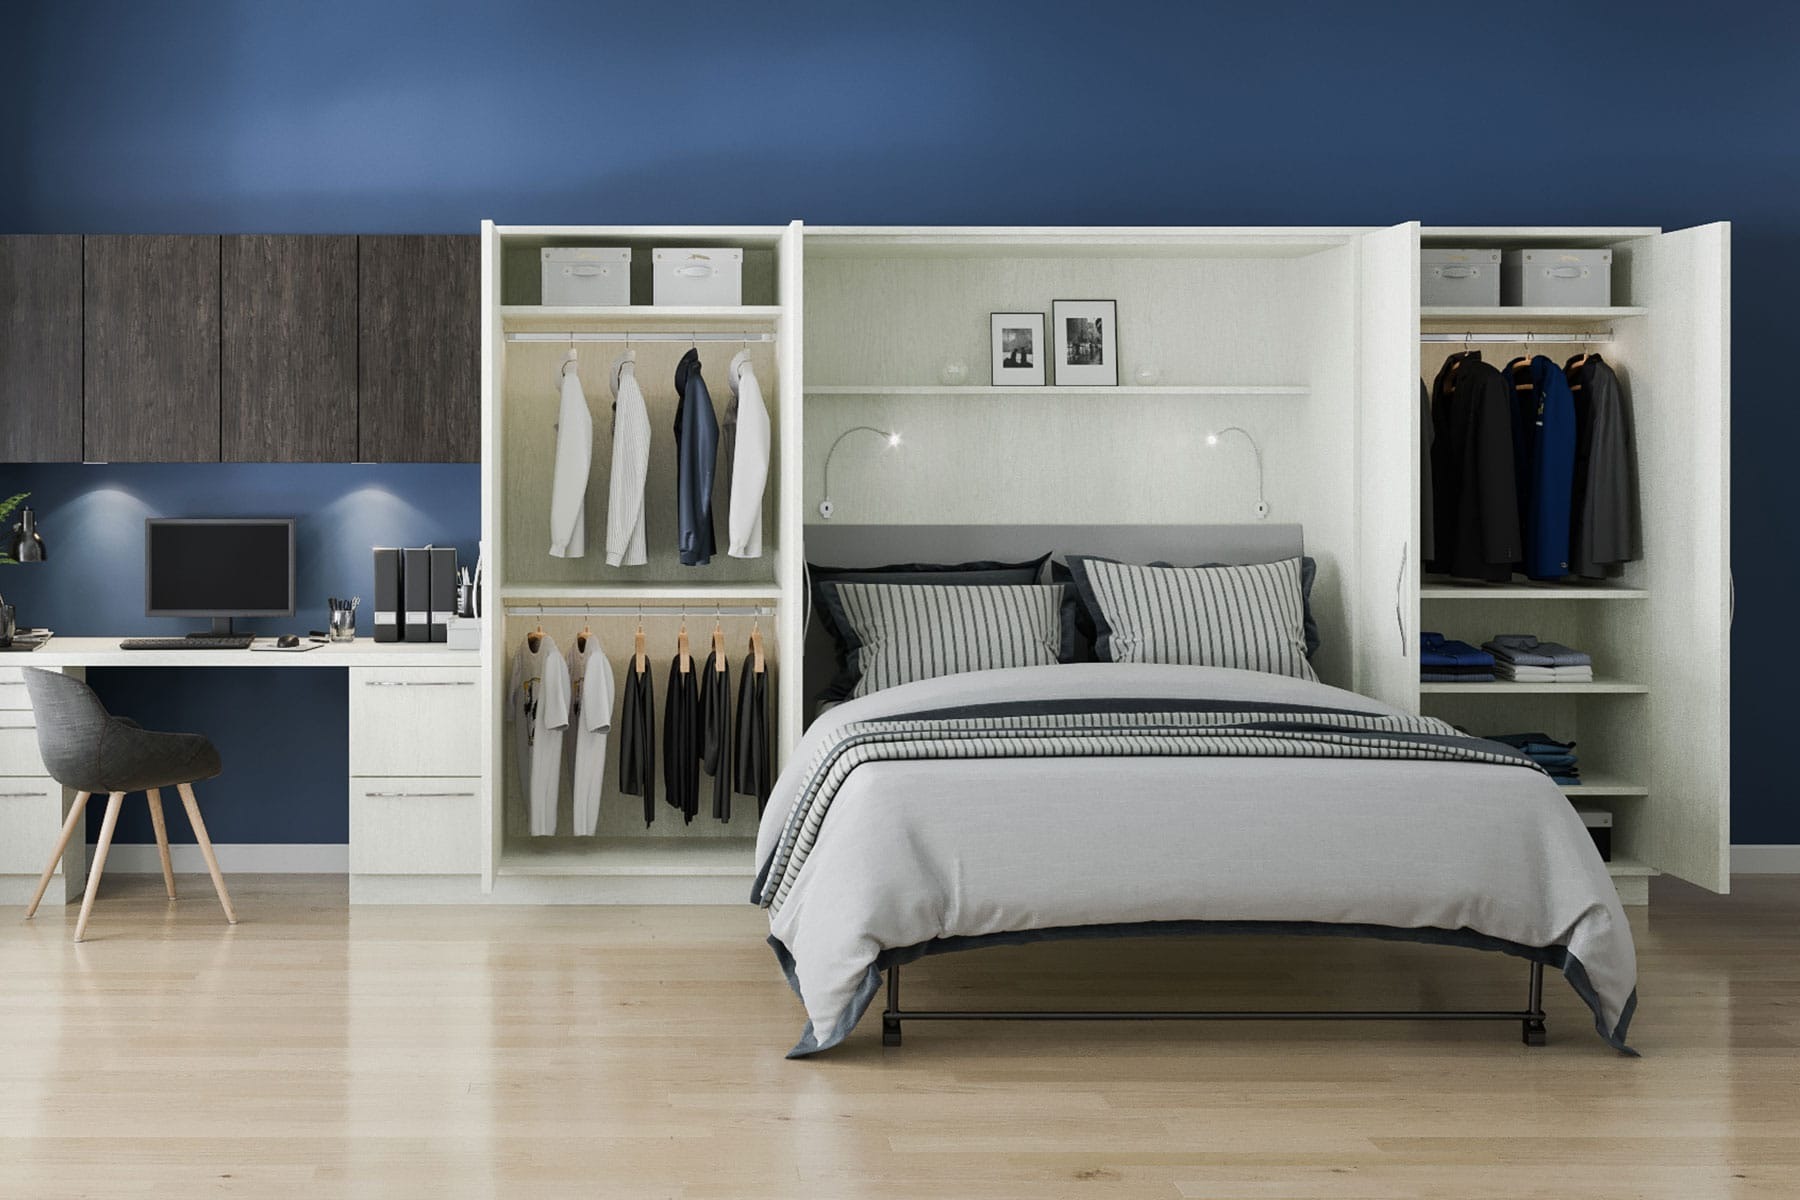 desk and jersey systems wall closet northern concepts new custom closets bed storage nj